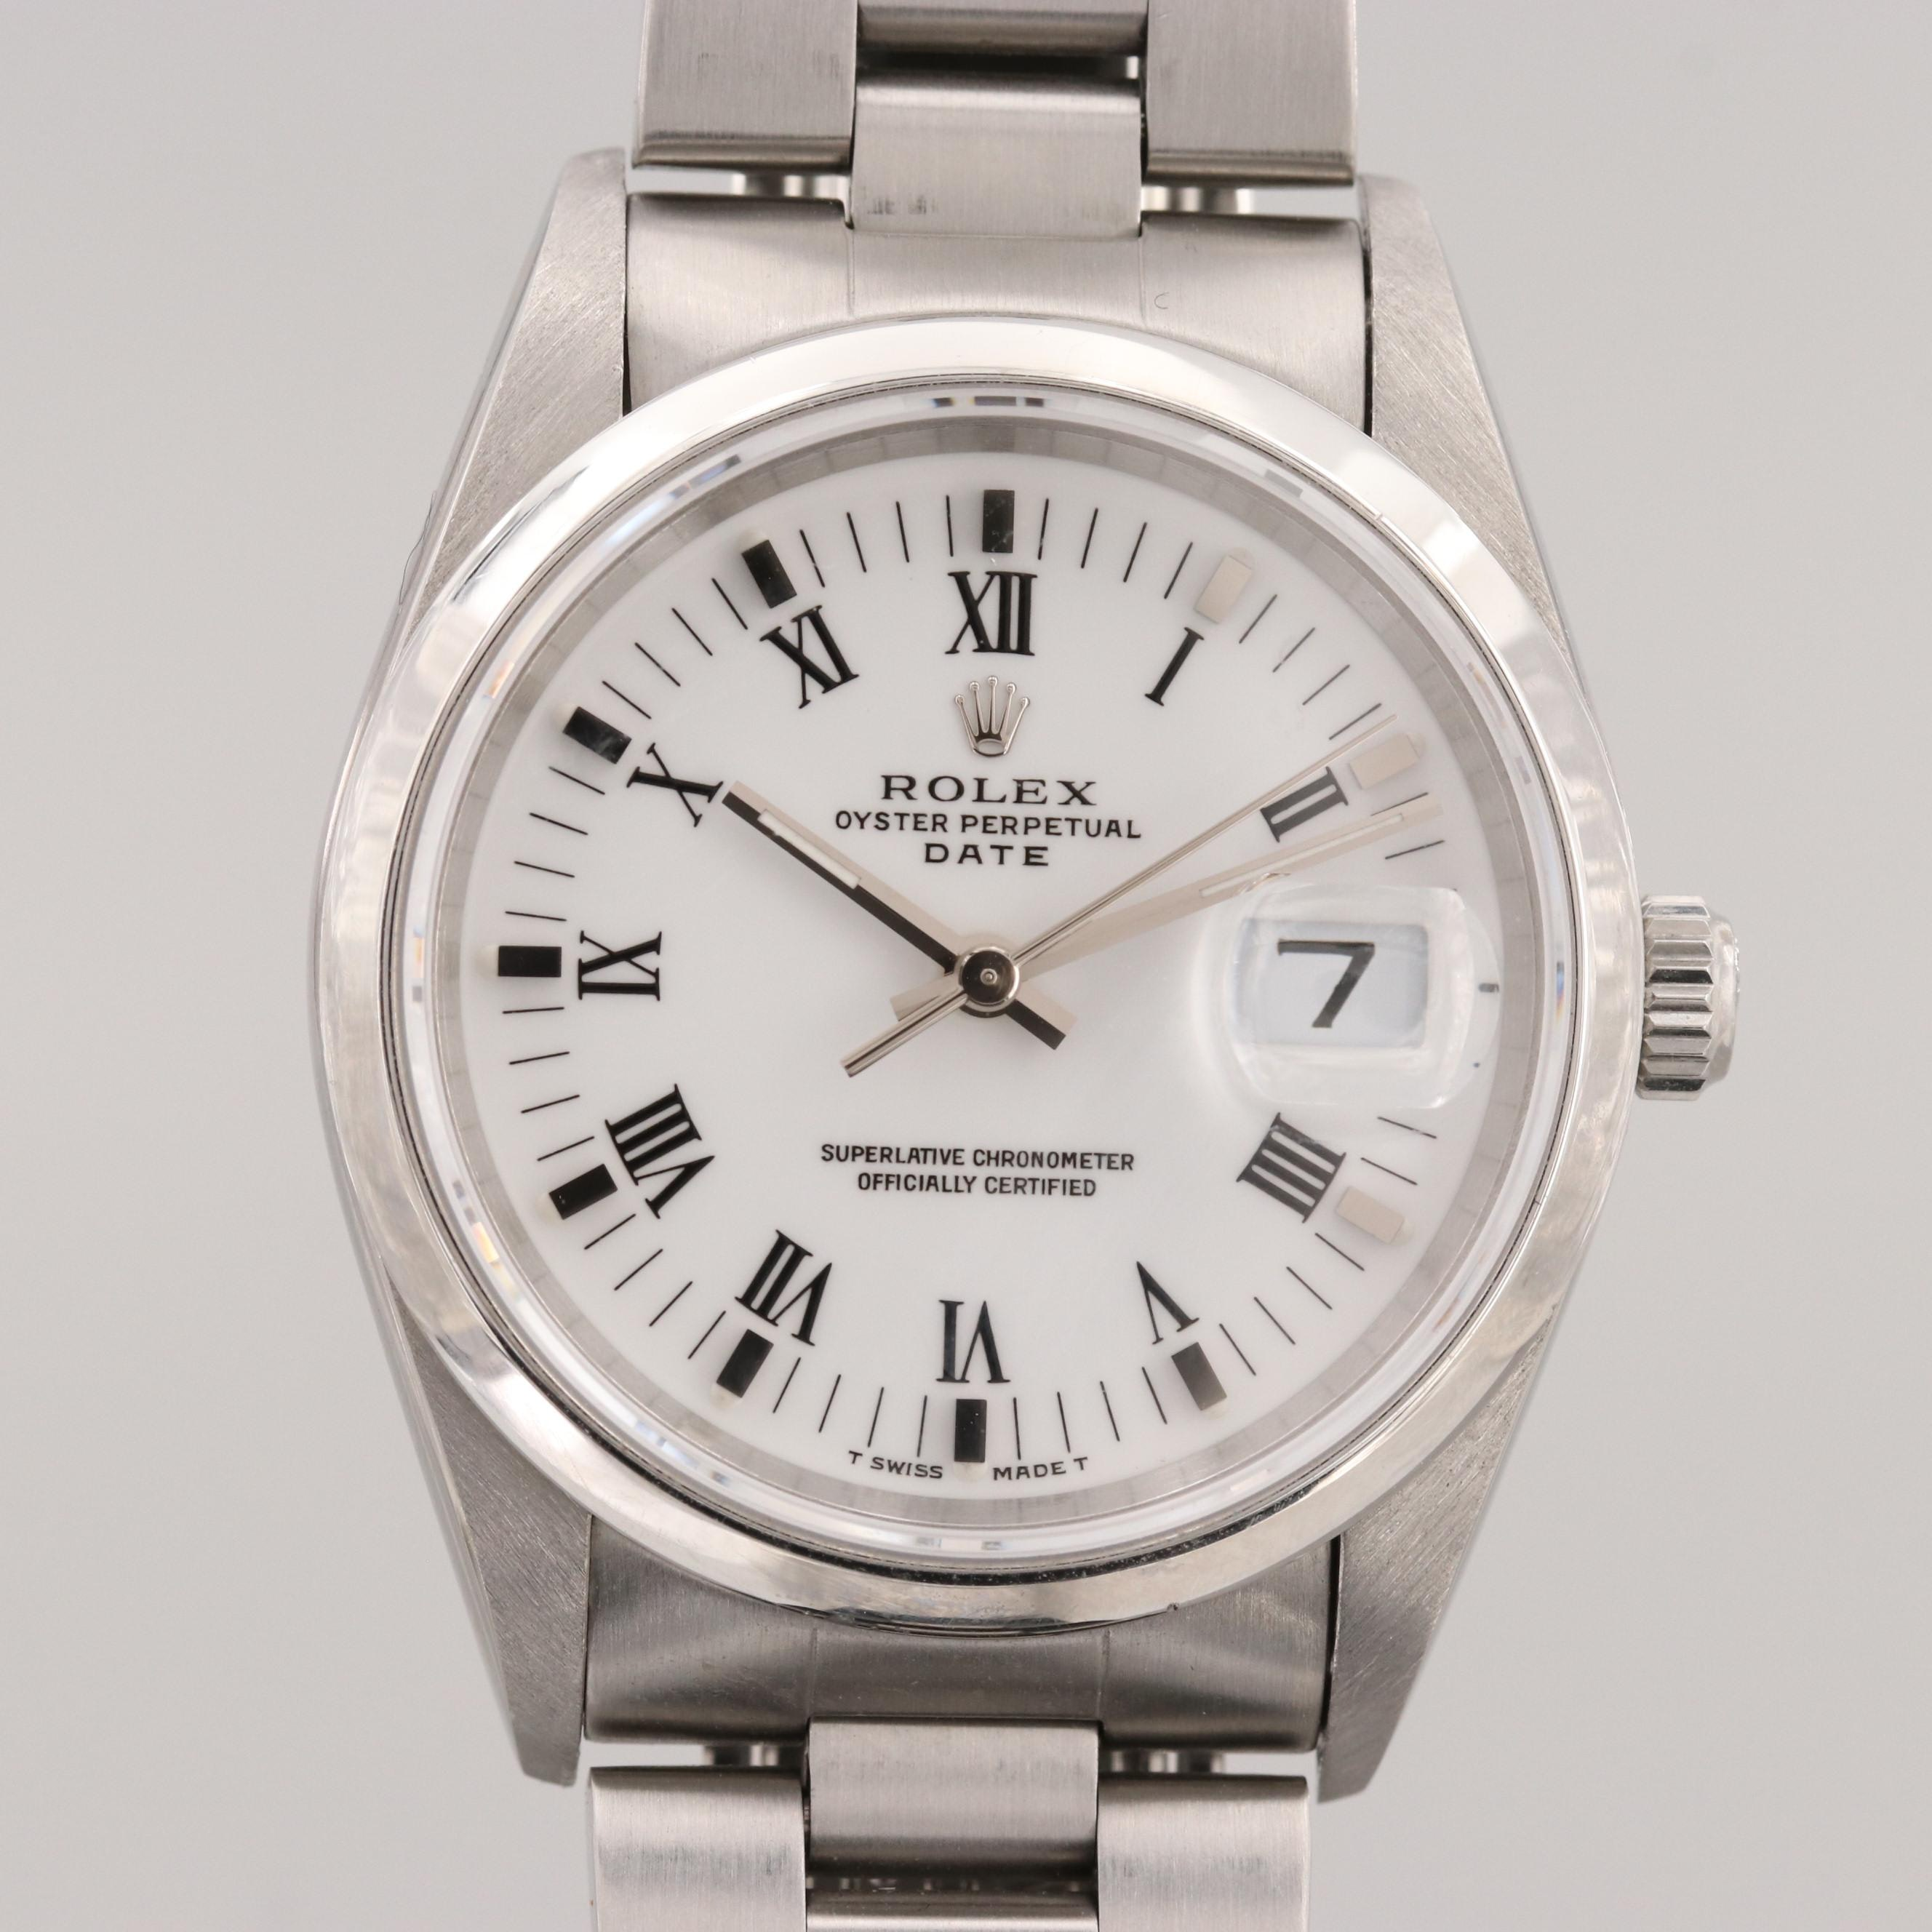 Rolex Perpetual Date Stainless Steel 34mm Automatic Wristwatch, 1996